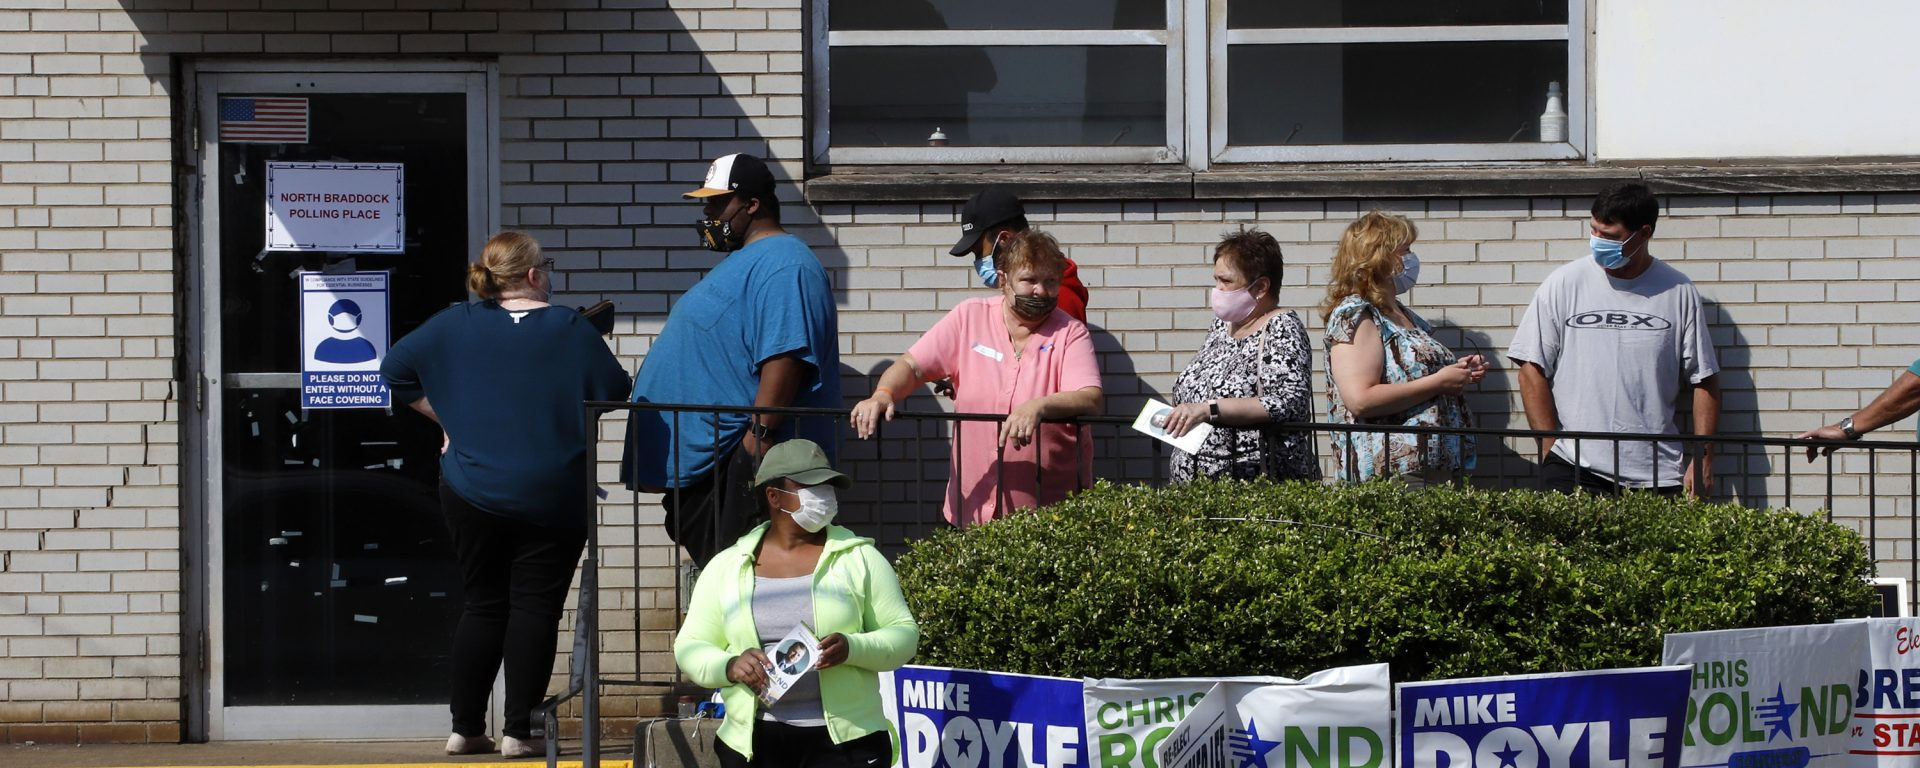 Voters wait in line to vote in the Pennsylvania Primary outside the North Braddock Municipal Building in Braddock, Pa., Tuesday, June 2, 2020.